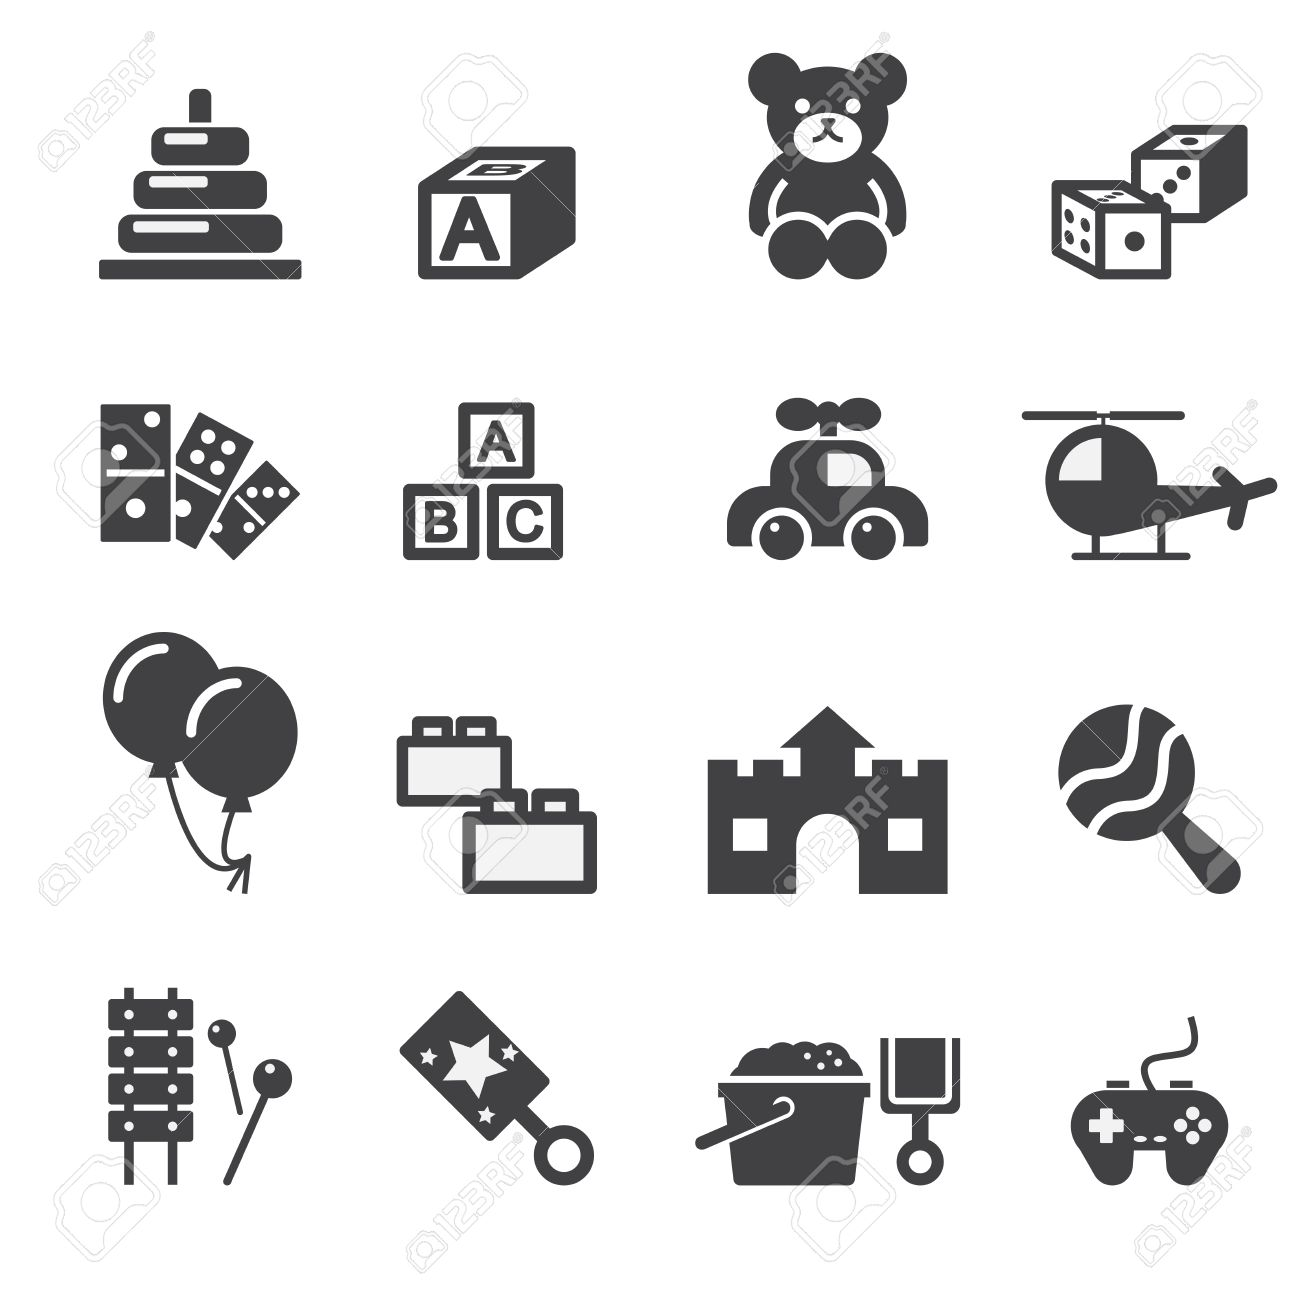 toy icon royalty free cliparts vectors and stock illustration